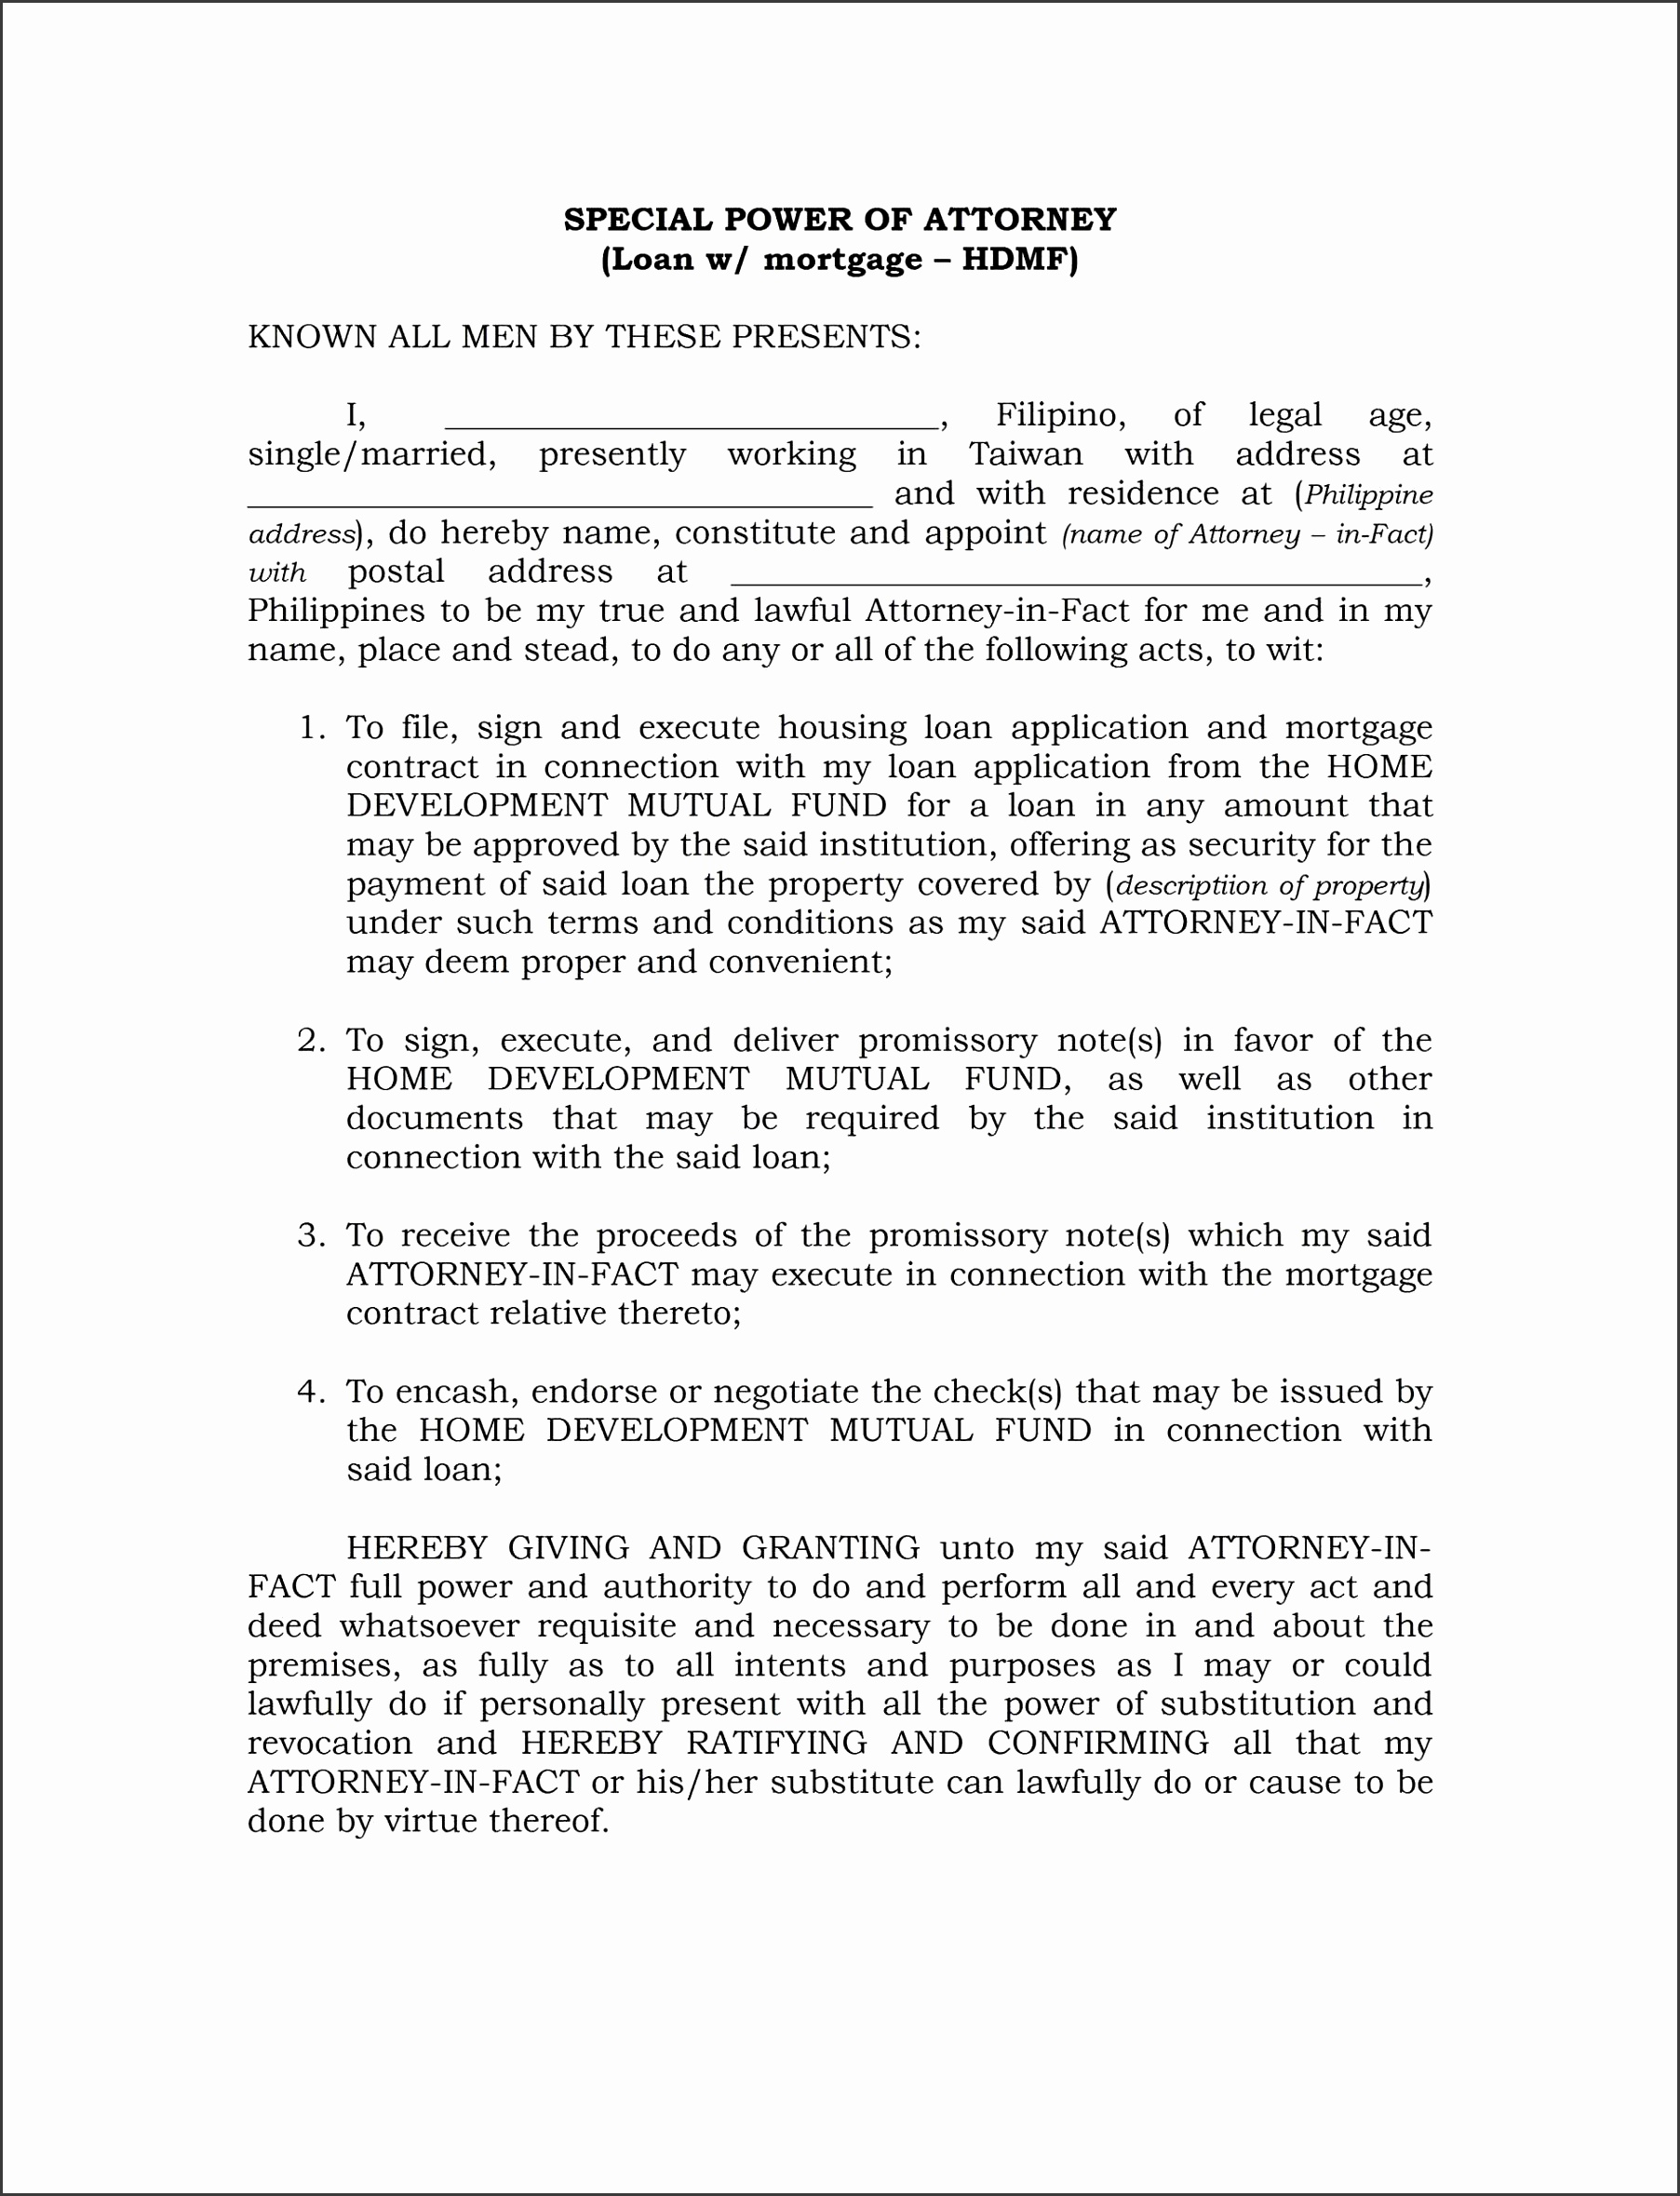 File note template law – gahara.